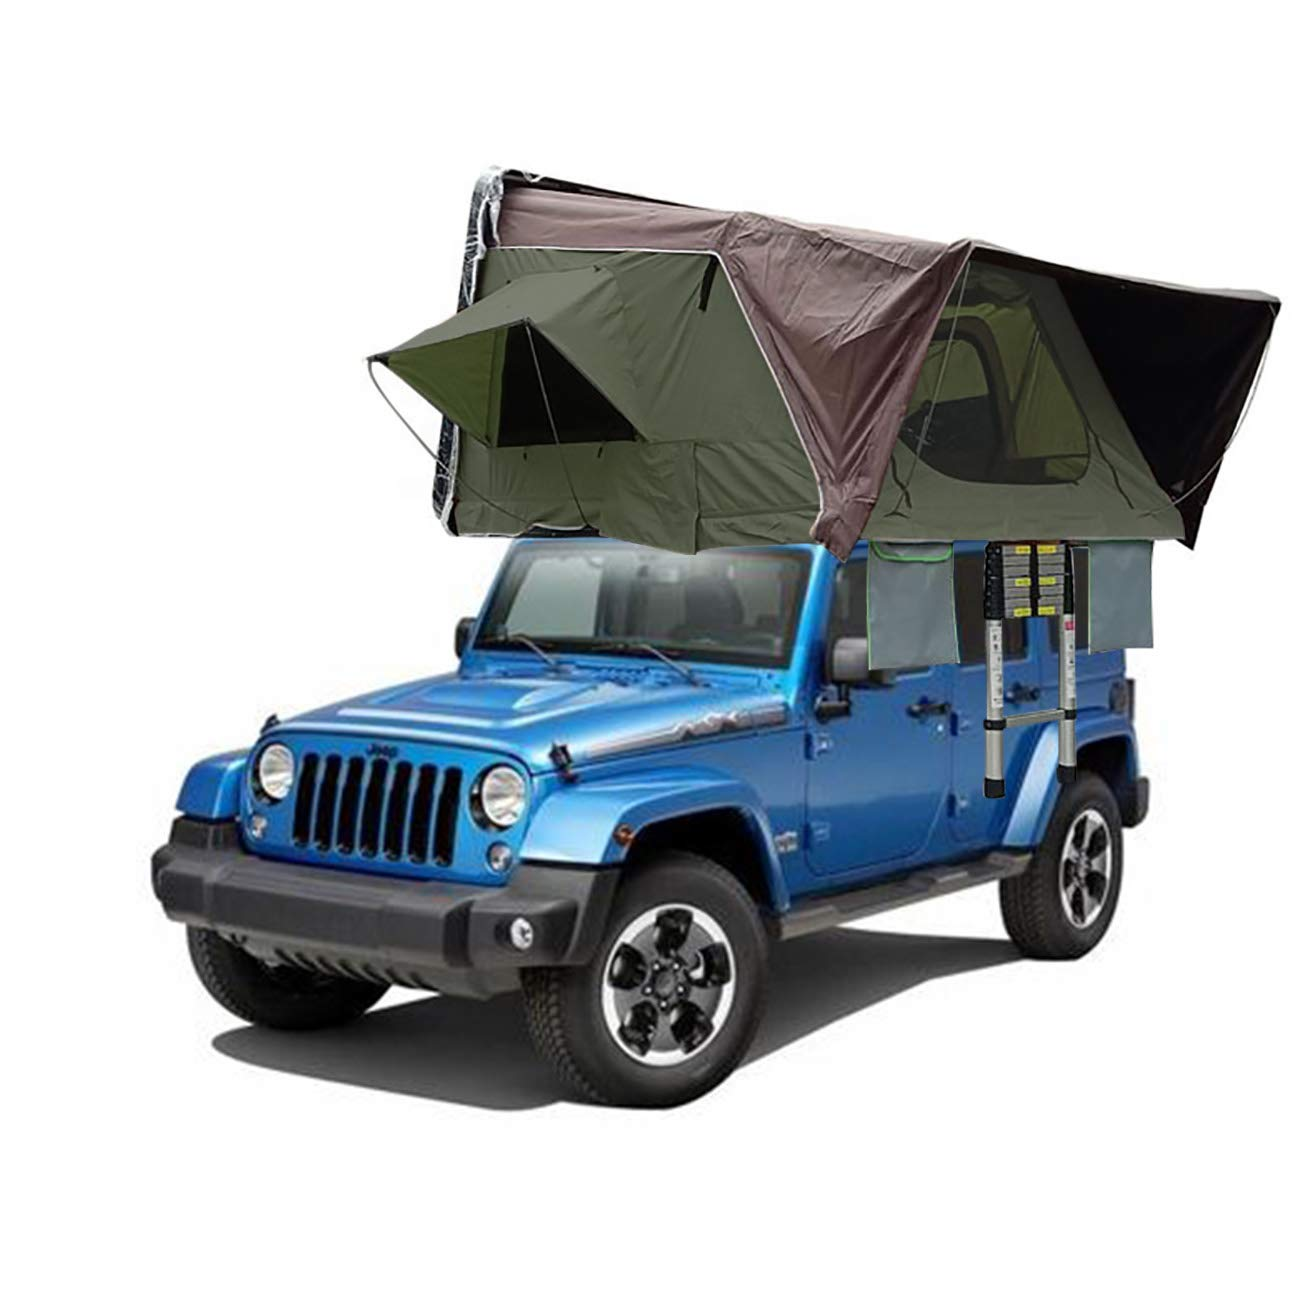 Amazon com: Procampy Rooftop Tent,Hydraulic Boost Pop Up Car